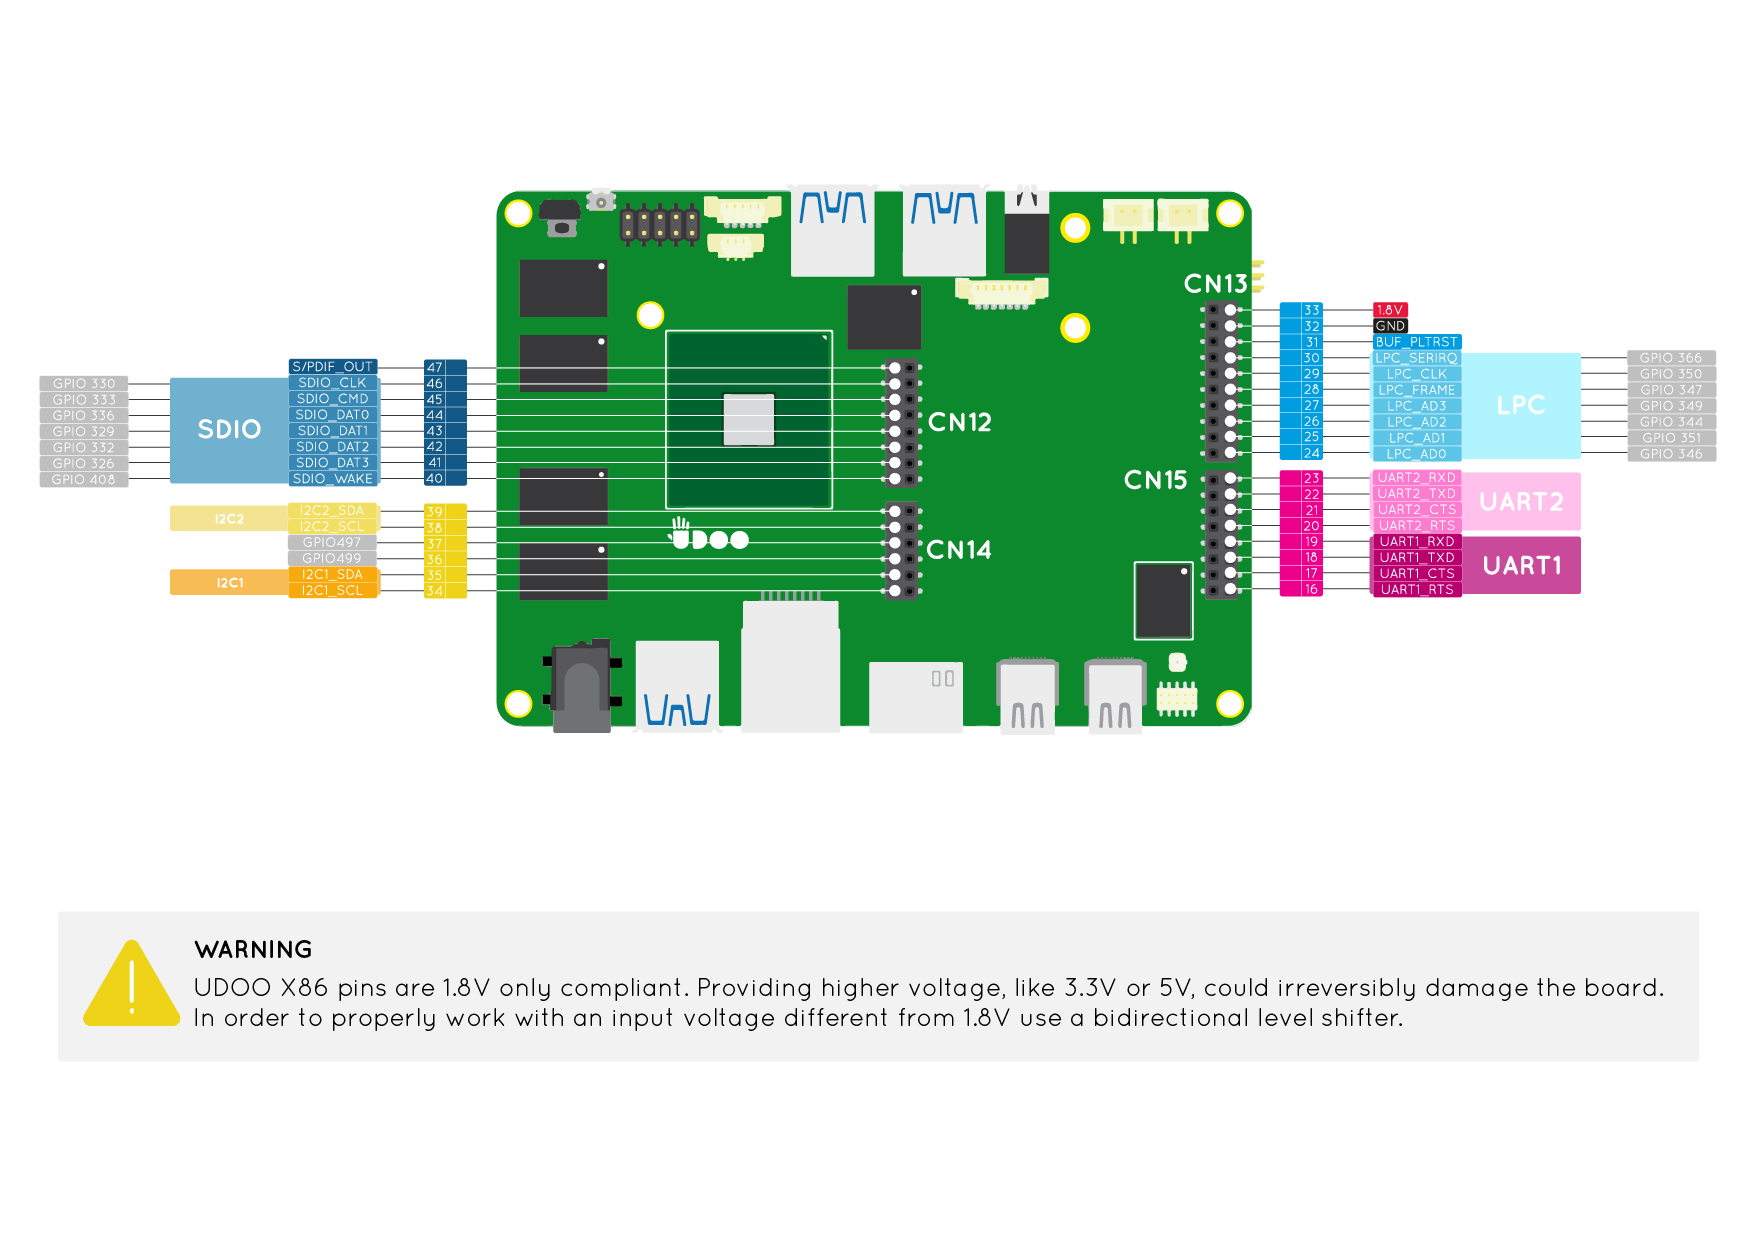 Fan control on the UDOO x86 – Stuff and Nonsense